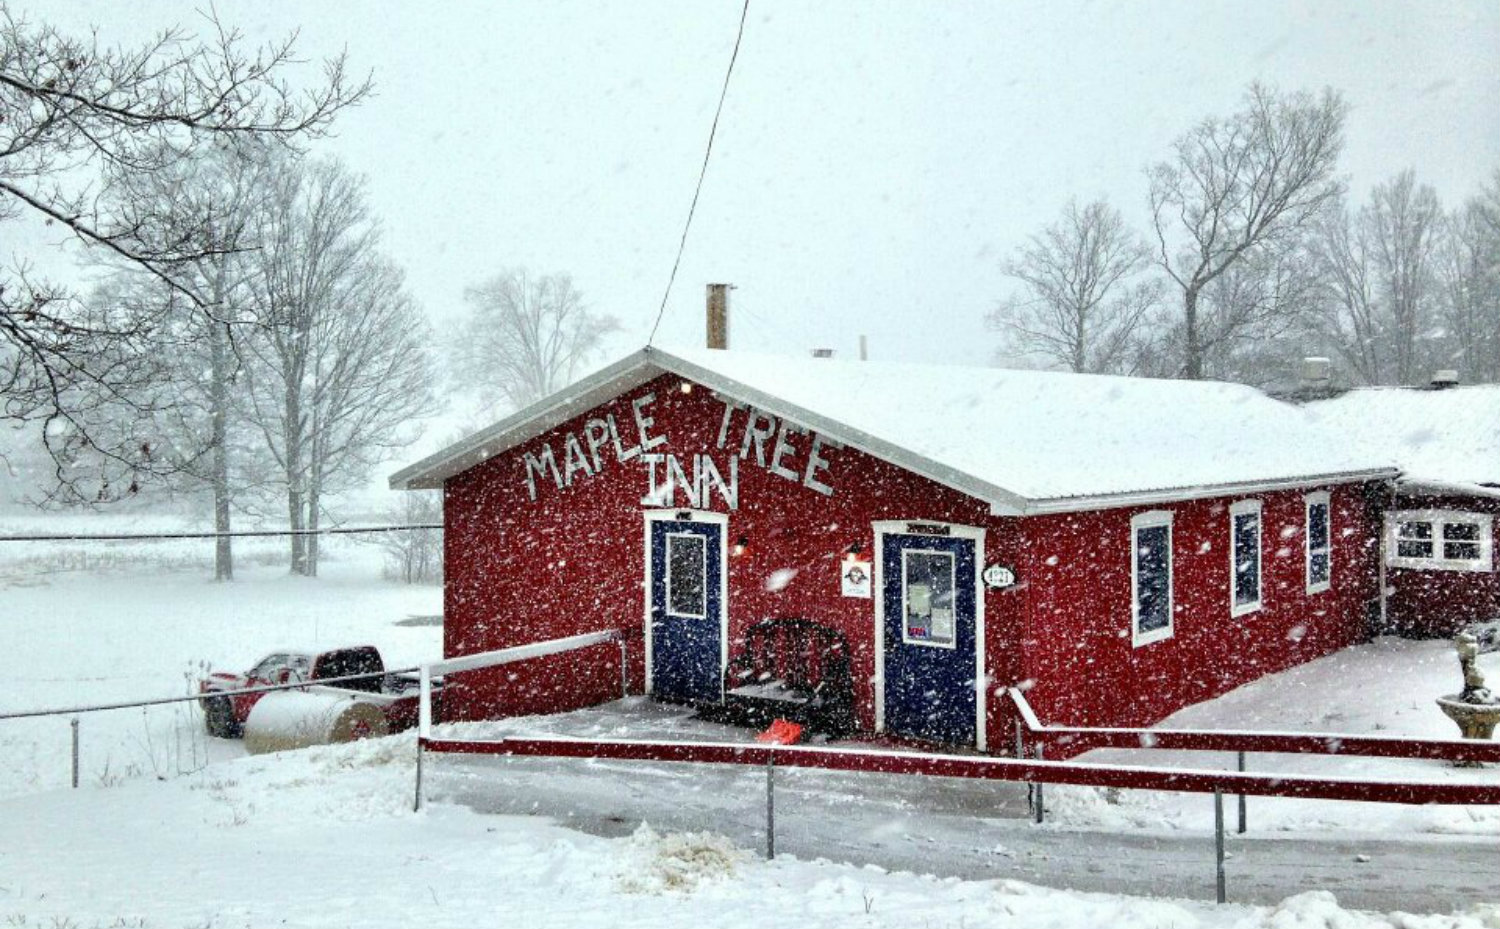 Cartwright's Maple Tree Inn in Angelica, NY - Featured Image